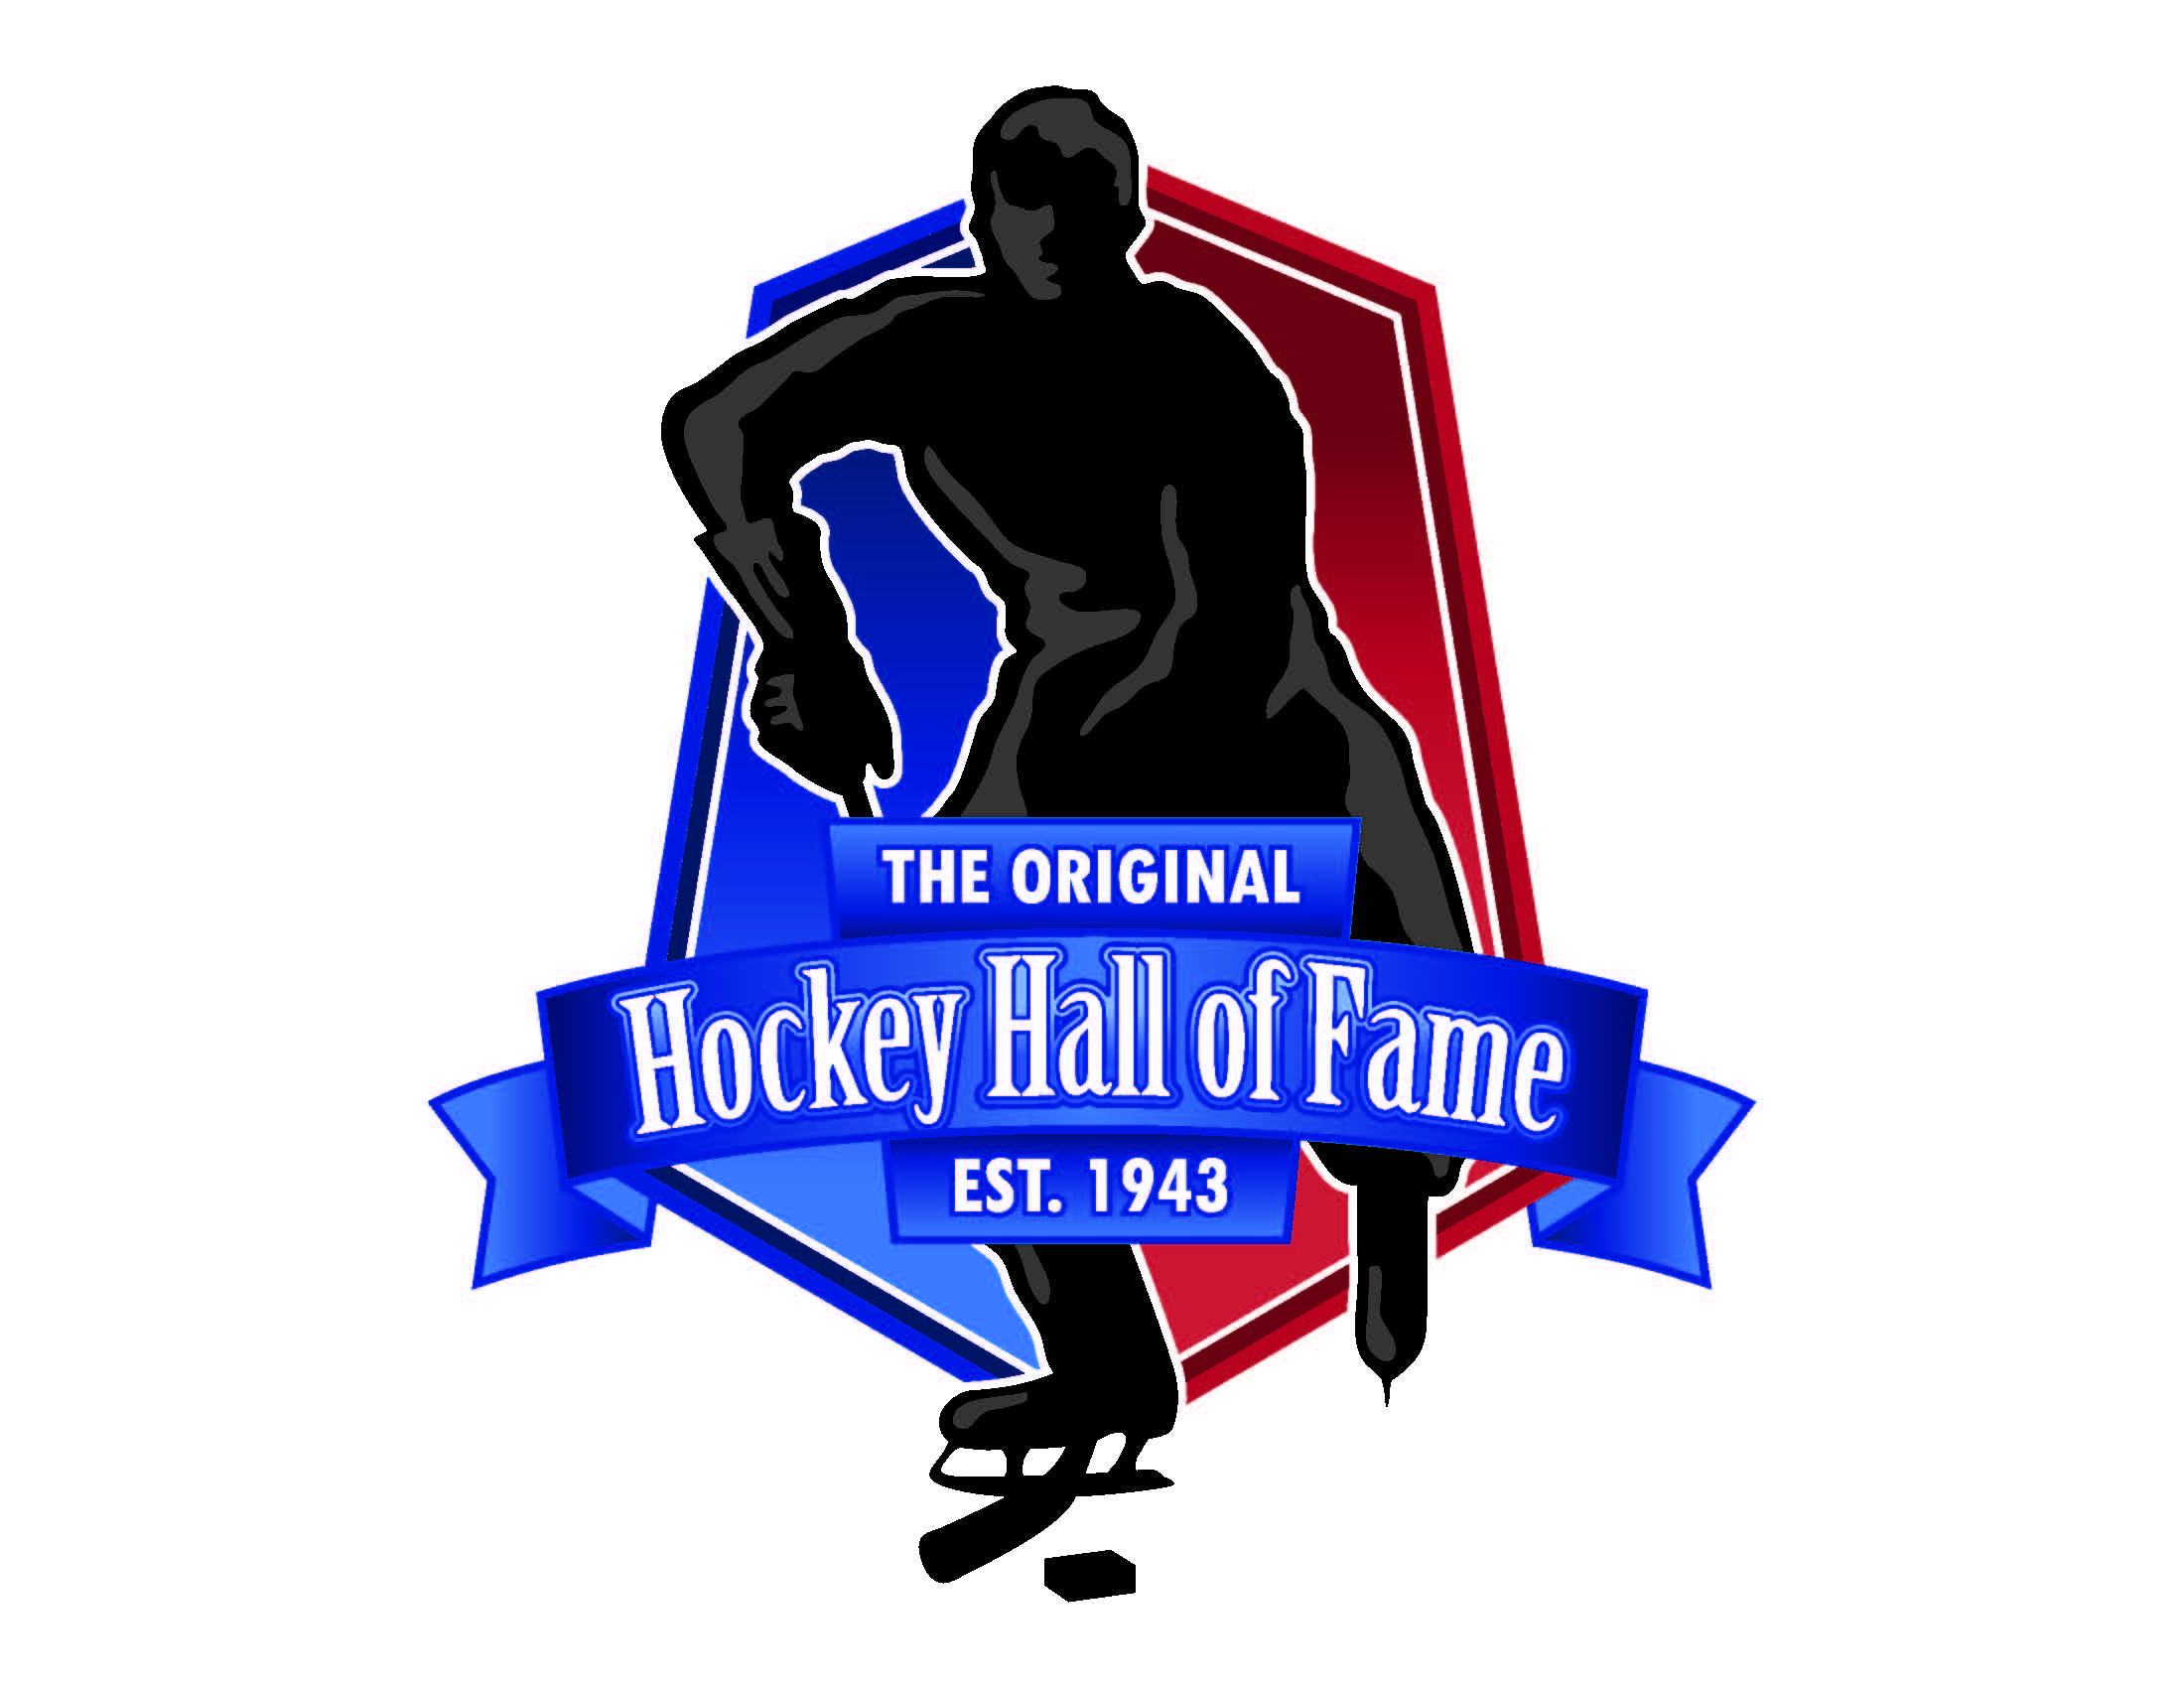 The Original Hockey Hall of Fame